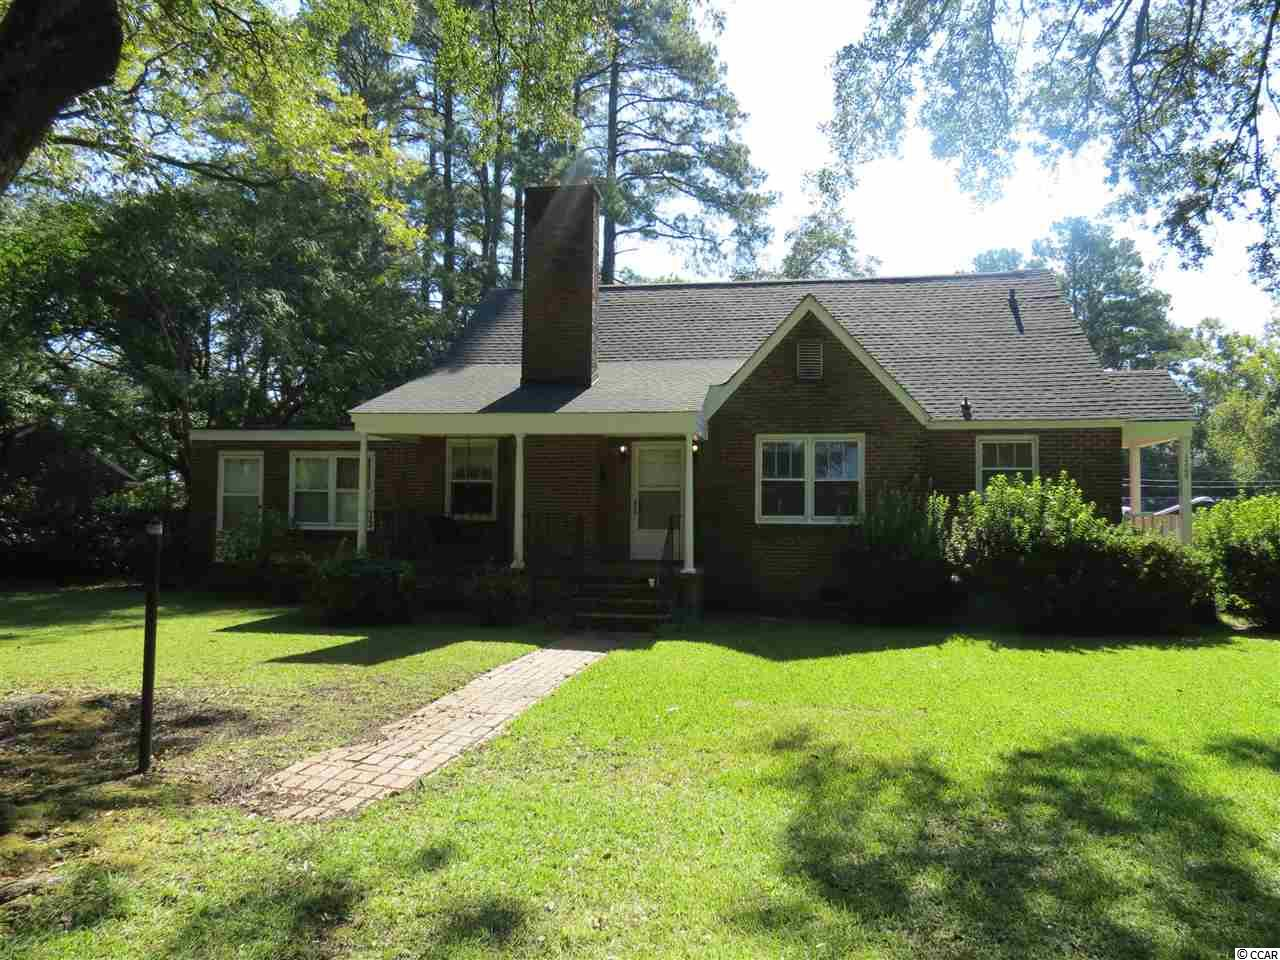 All Brick Veneer Home located on a corner lot in the beautiful neighborhood of Richmond Plantation. Features included hardwood flooring, formal dining room, living and family room, brick wood burning fireplace, pine paneling walls and ceilings, kitchen with solid wood cabinets with accent shelving and smooth top range. French doors separating the living room and family room, arch doorways, large laundry room with extra cabinet storage, back porch entrance with covered walkway from garage. Side and front porch with swing for outdoor enjoyment. HVAC unit new in 2017 and new roof in 2017.